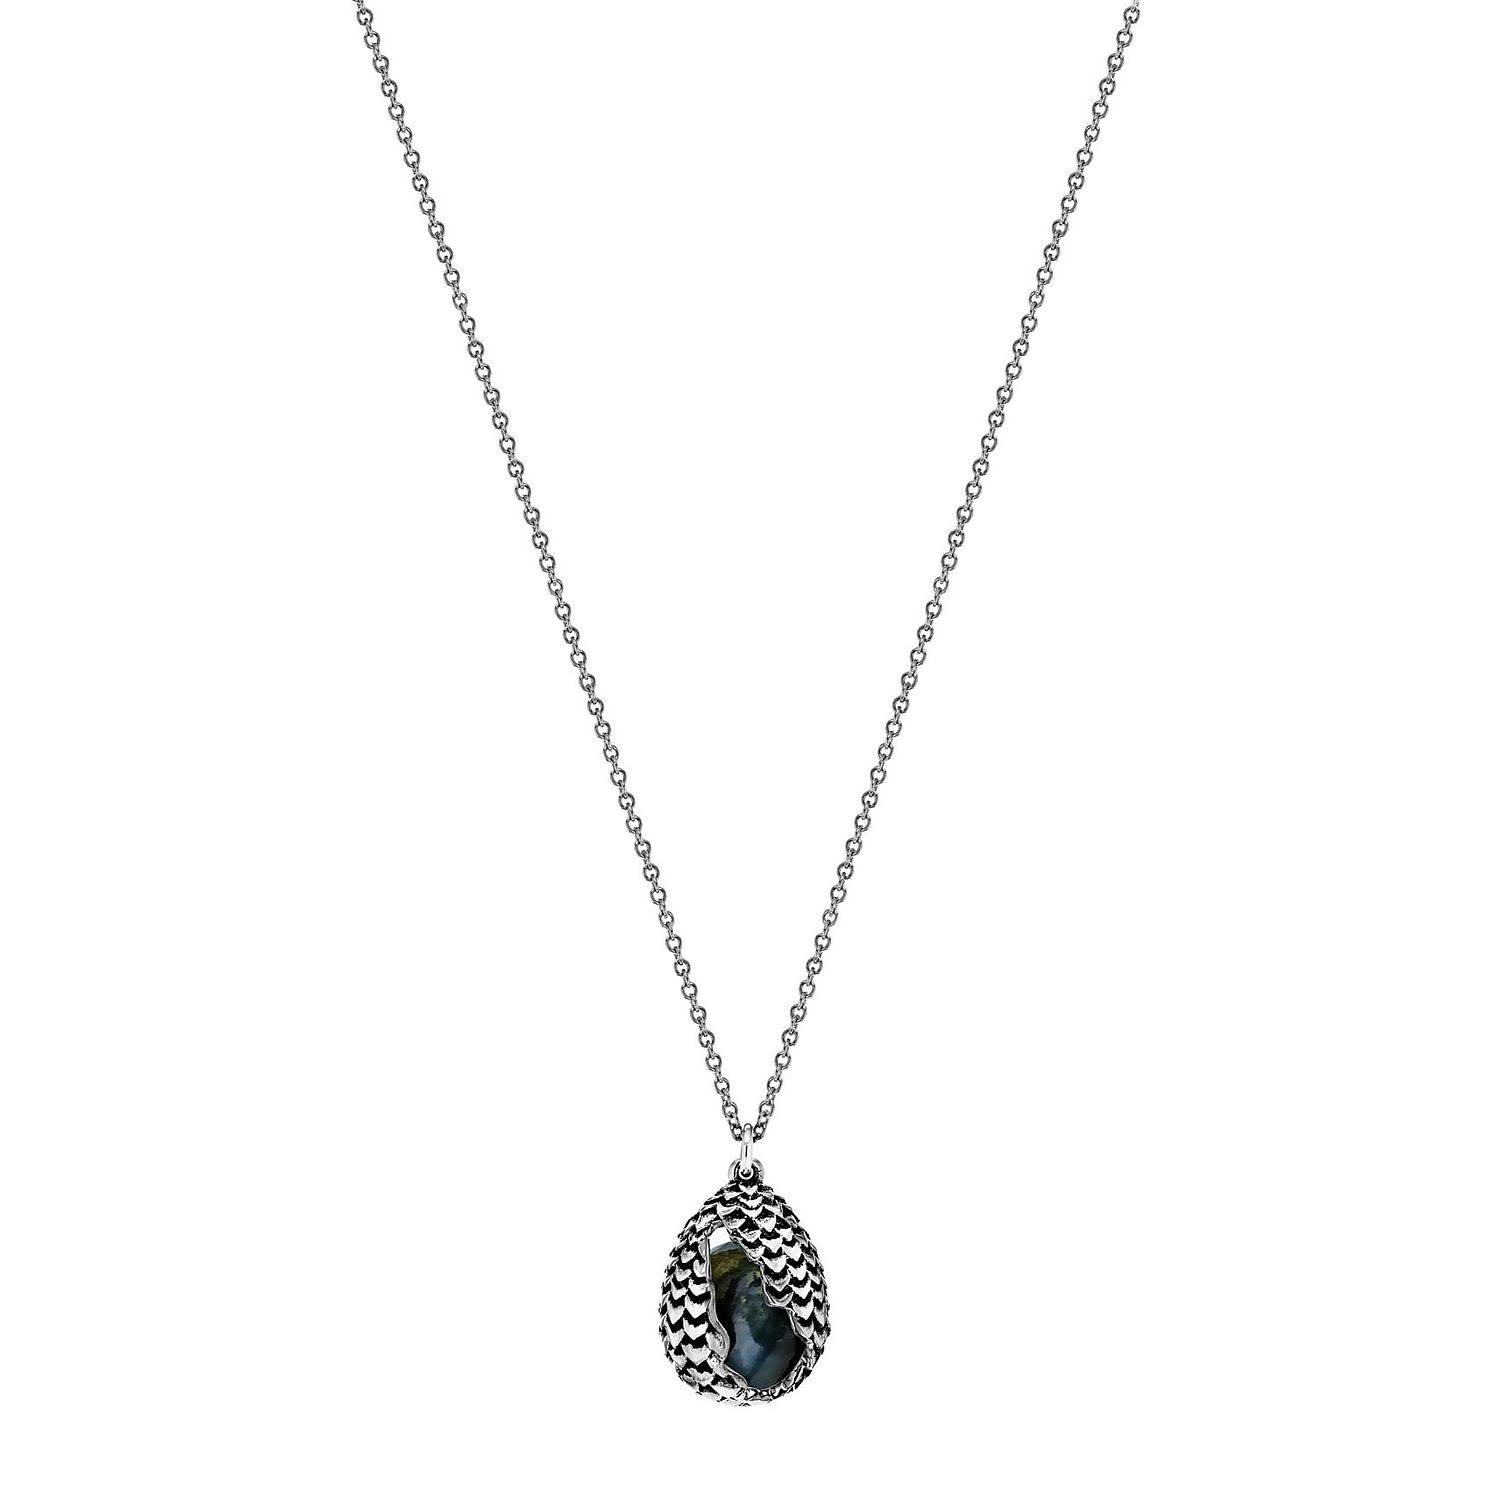 Mey For Game Of Thrones Dragonstone Blue Labradorite Pendant - Product number 2336294